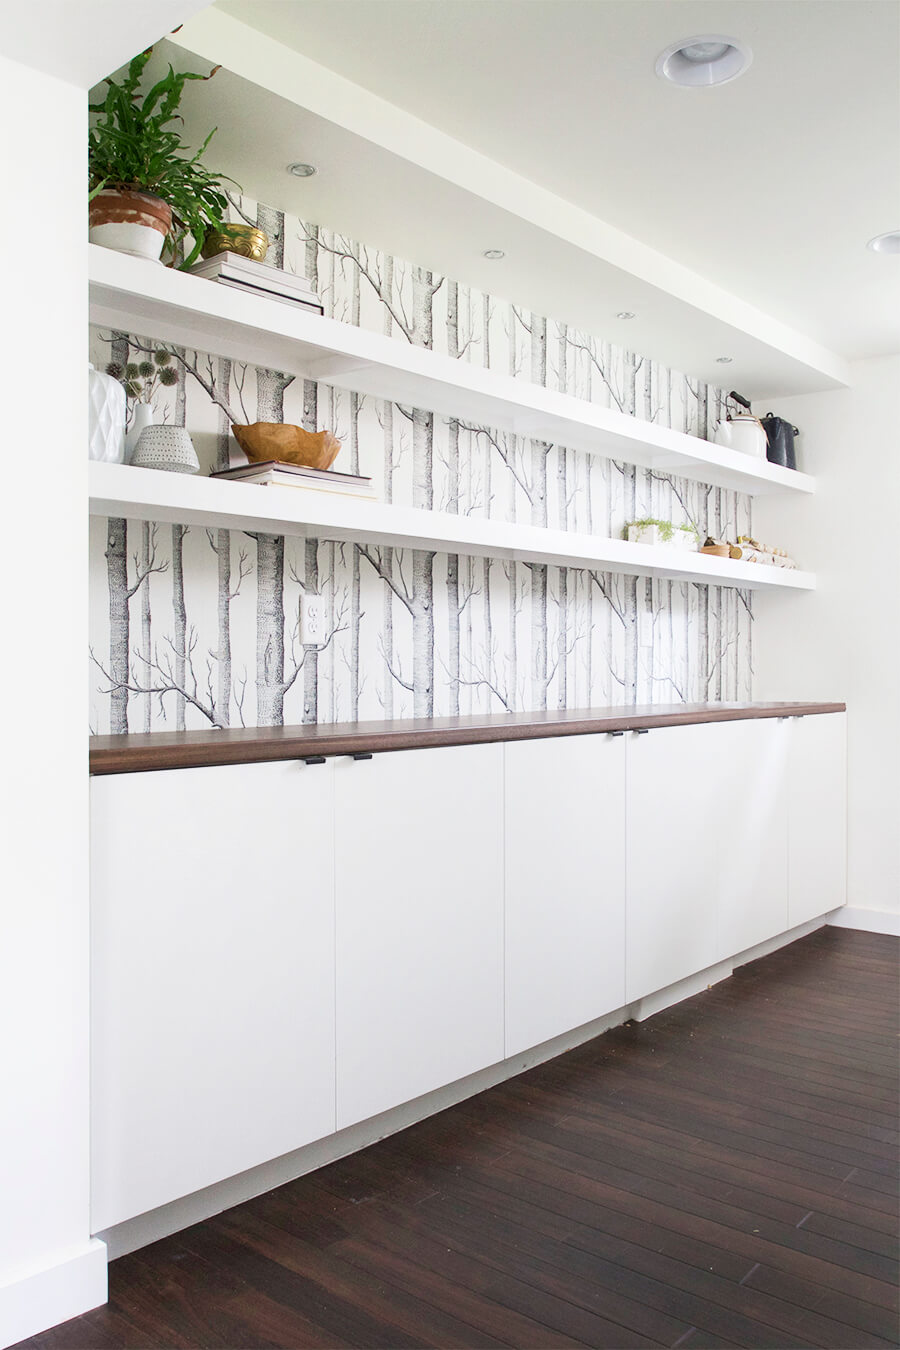 Wall To Wall Shelves 32 bright diy floating shelf ideas to maximize your space